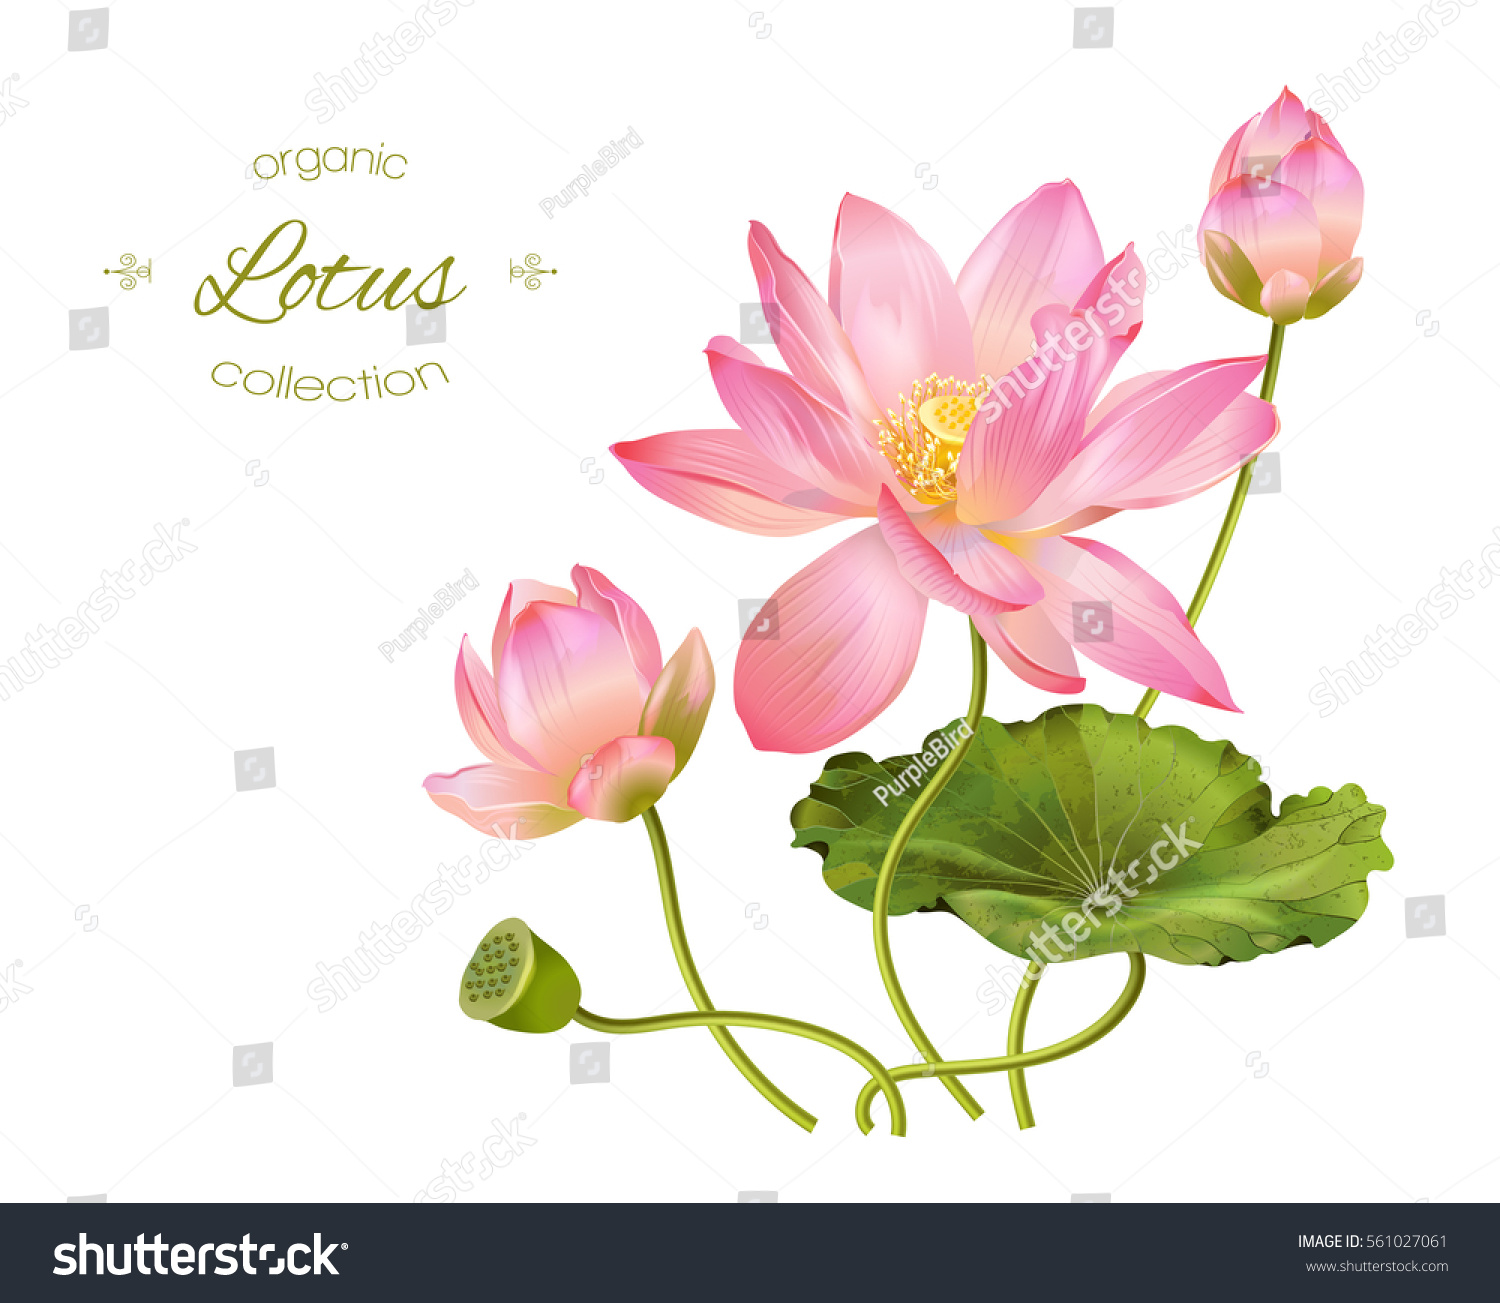 Vector Realistic Illustration Lotus Flowers Leaves Stock Vector